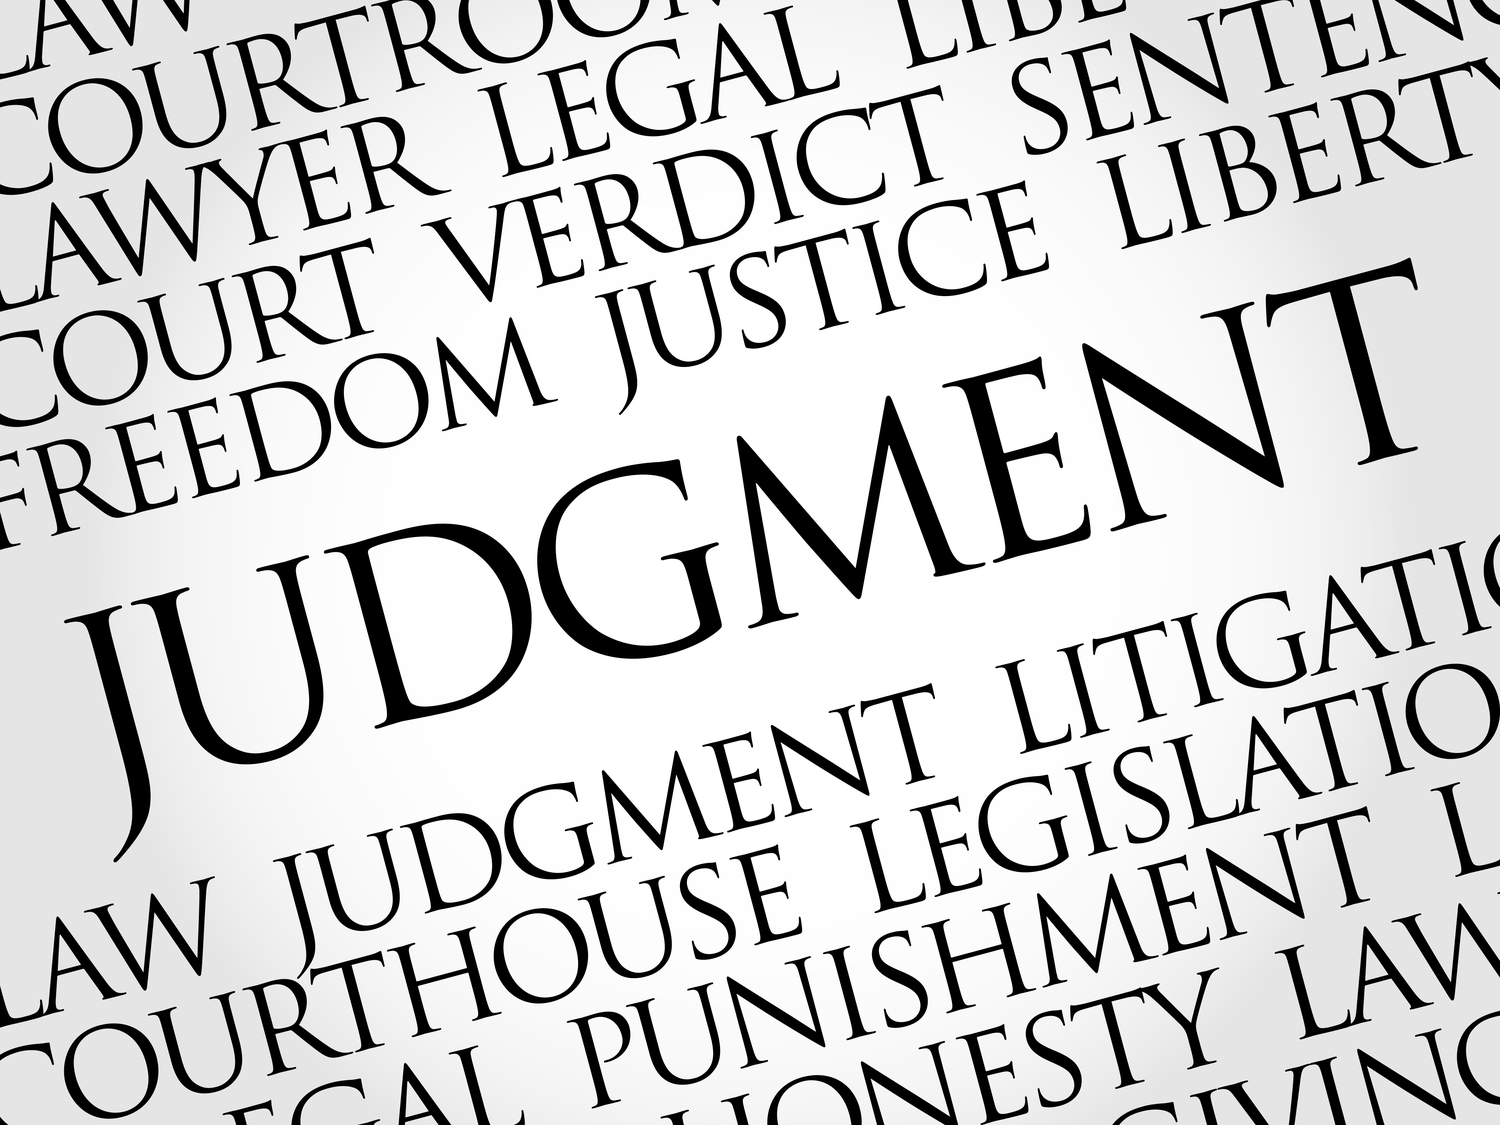 Episode 59: Judgment in the Lifestyle